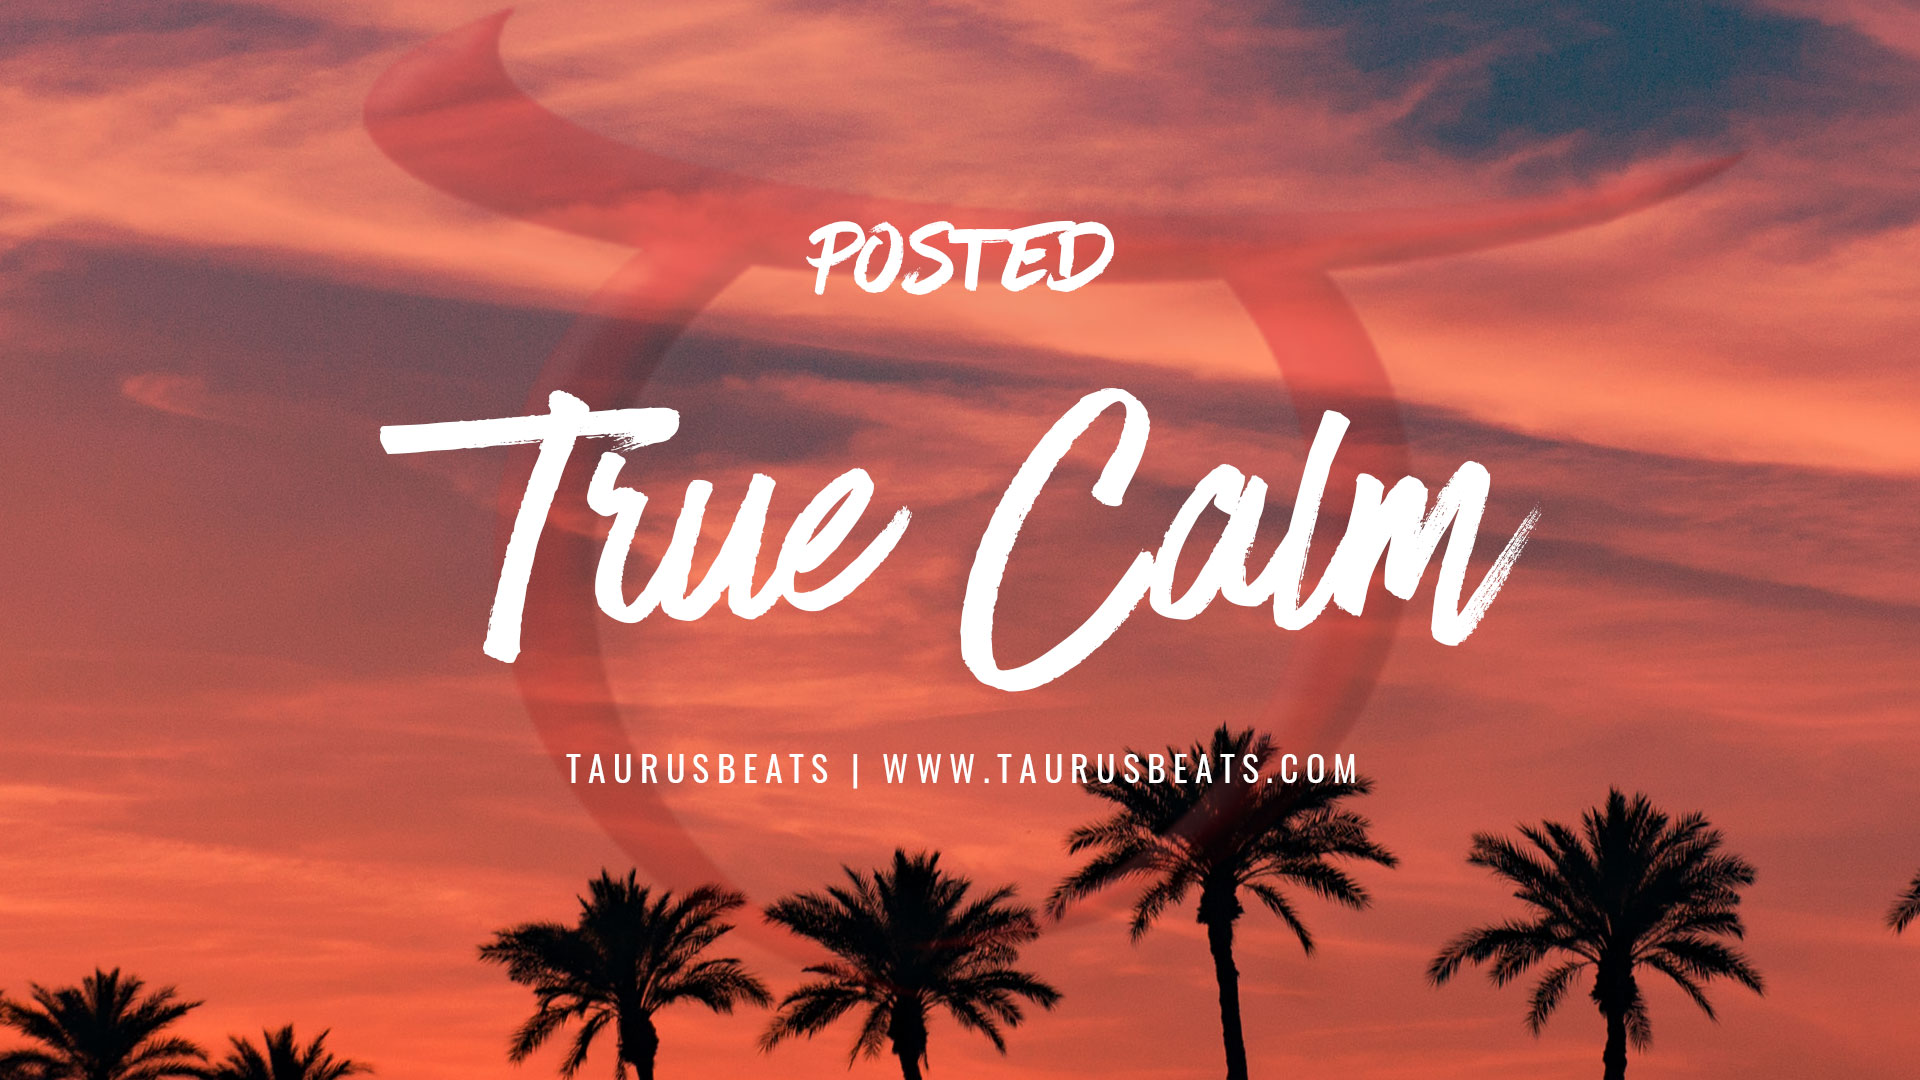 image for True Calm